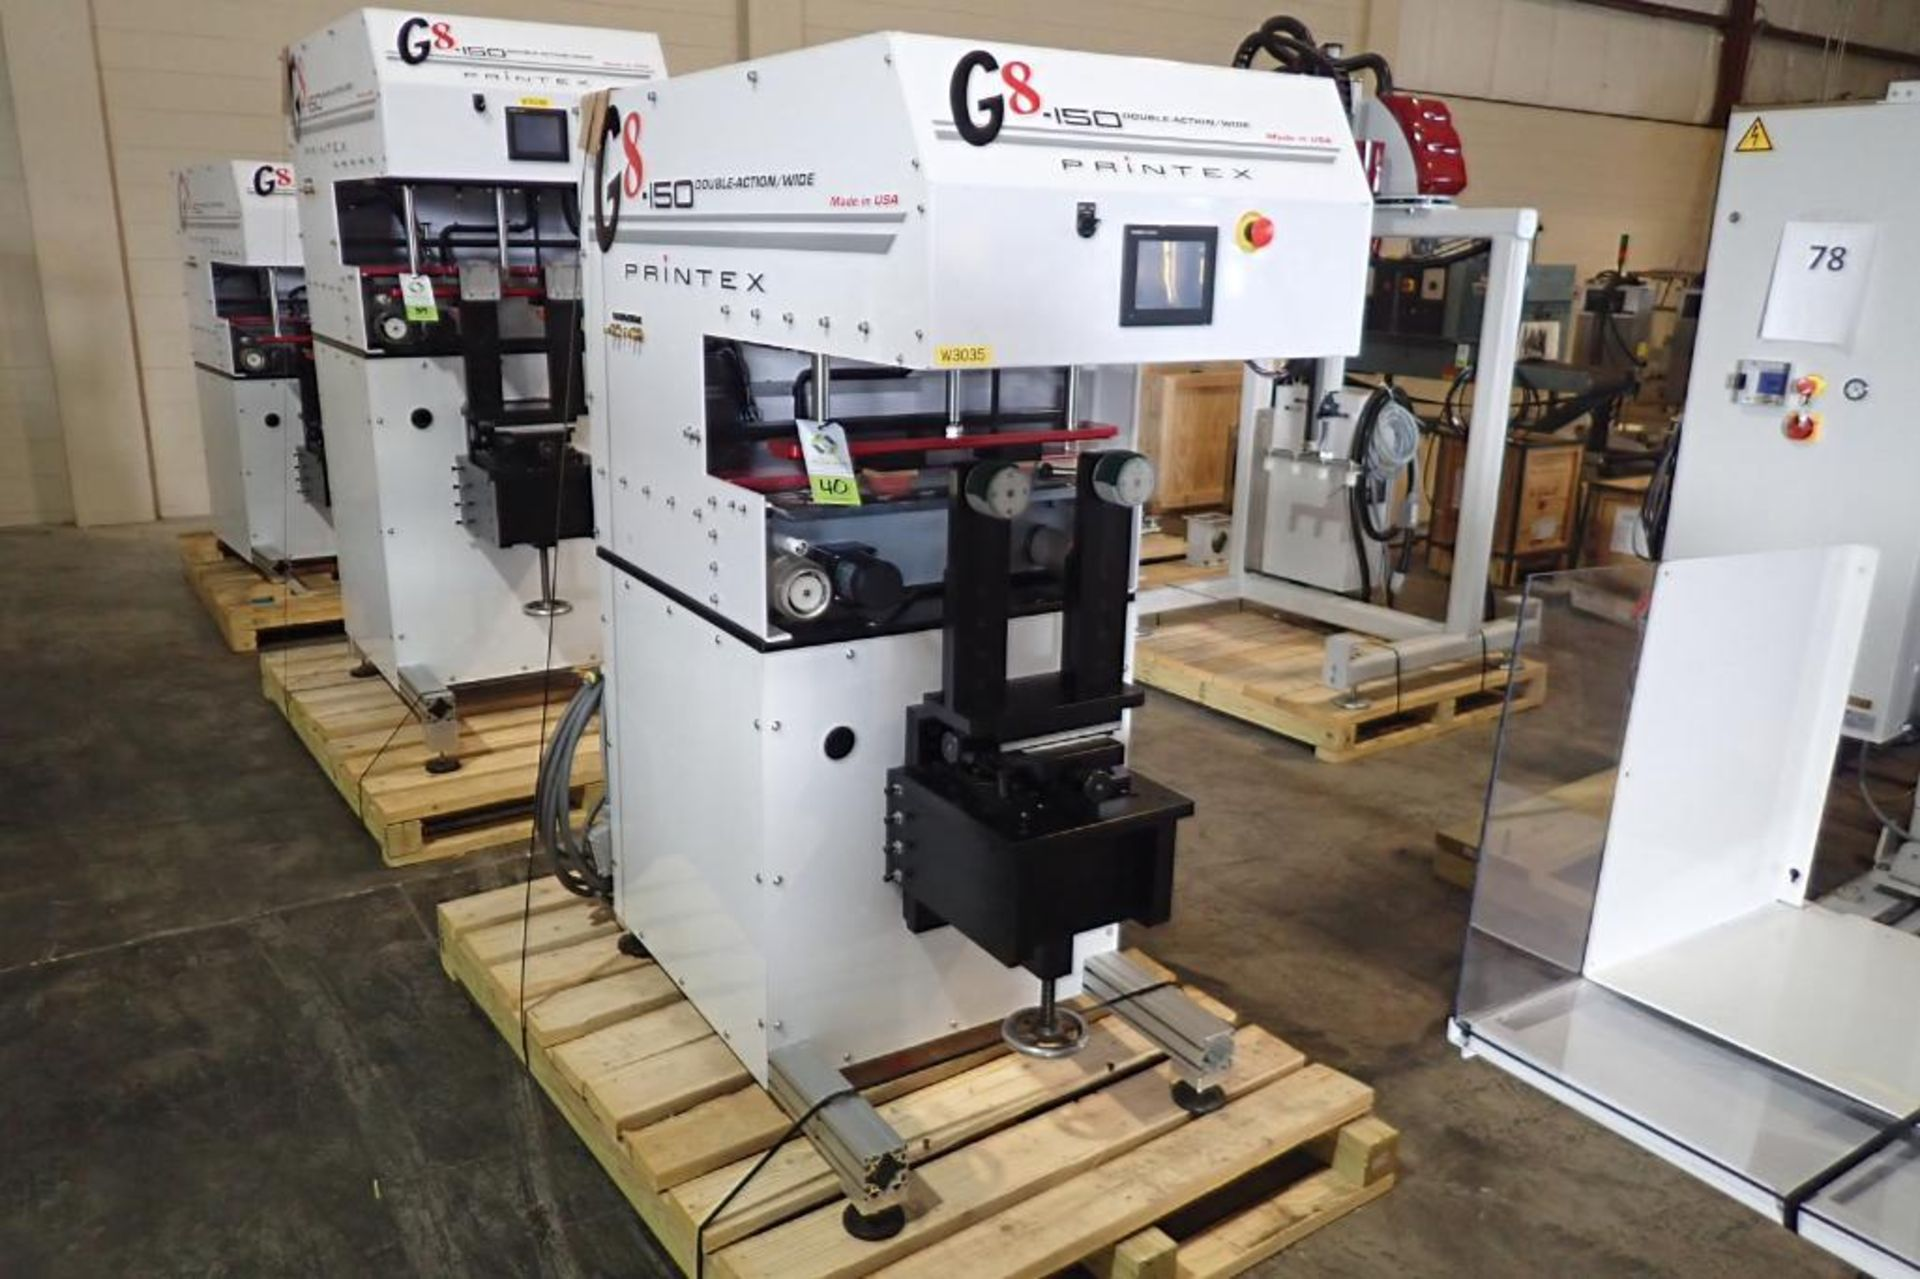 Lot 40 - 2015 Printex G8-150 double-action/wide pad printer, programmable controller and user-friendly